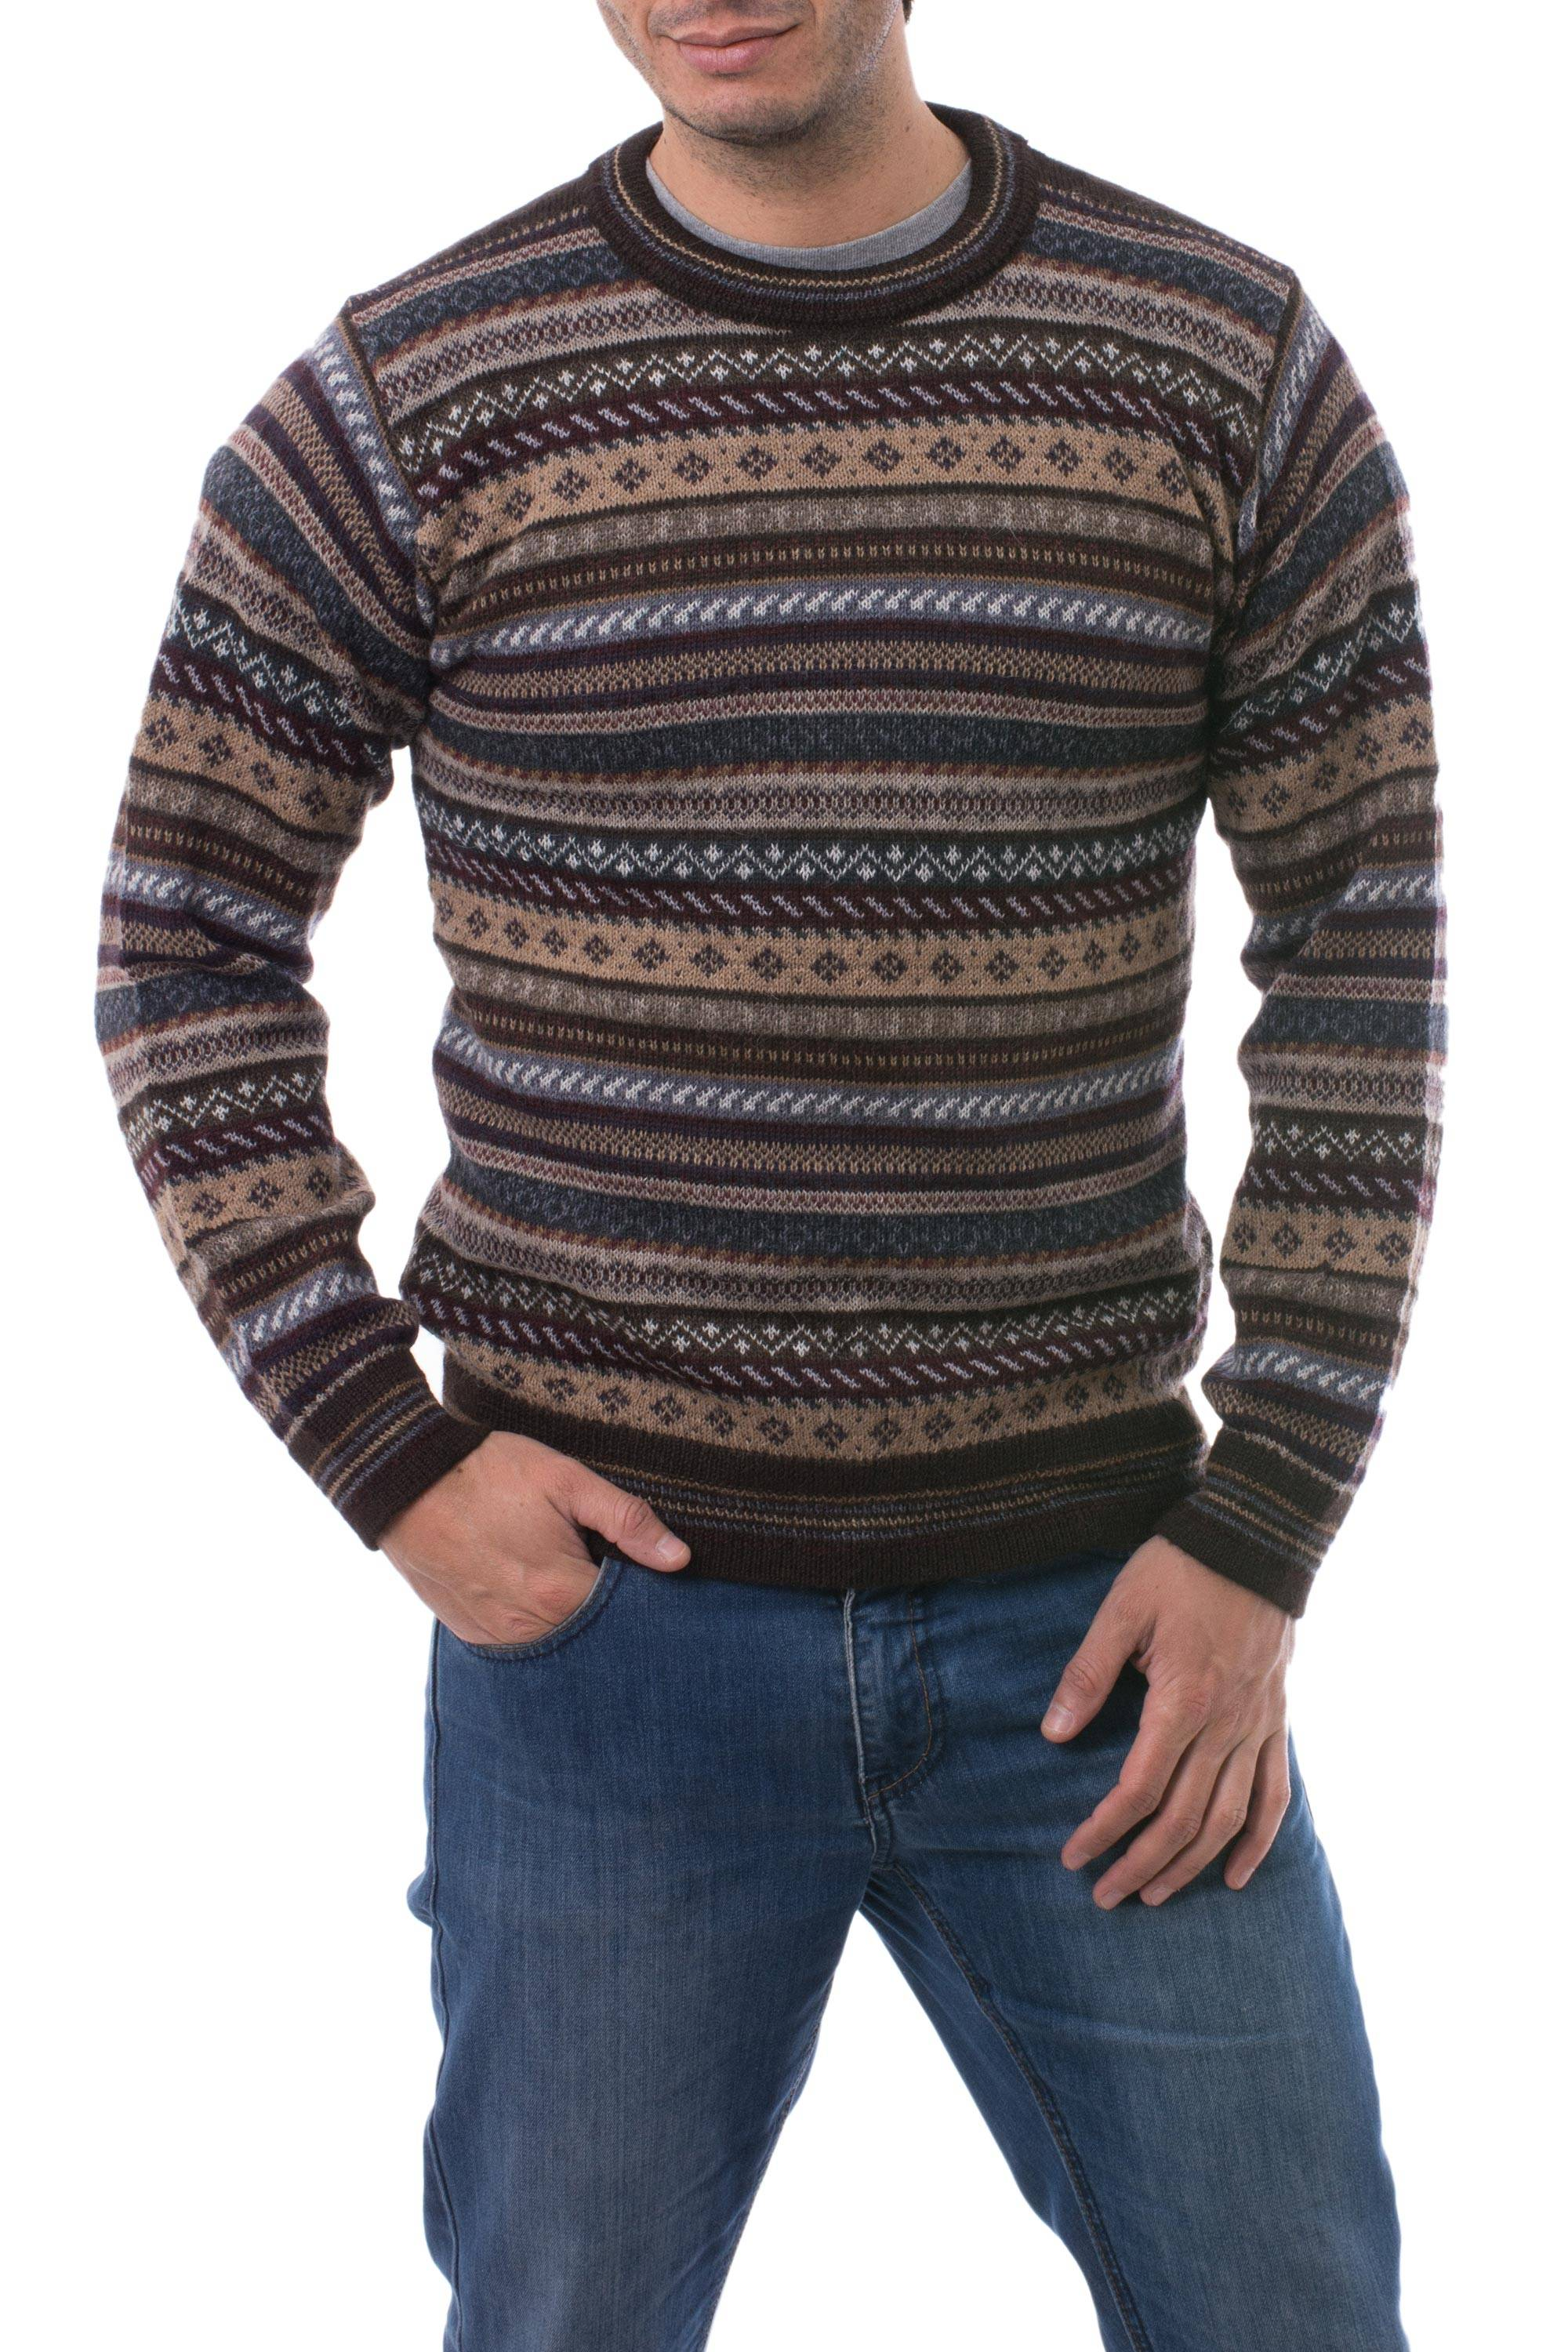 40d78a2c0fc1 Men s Striped and Patterned 100% Alpaca Pullover Sweater - Geology ...